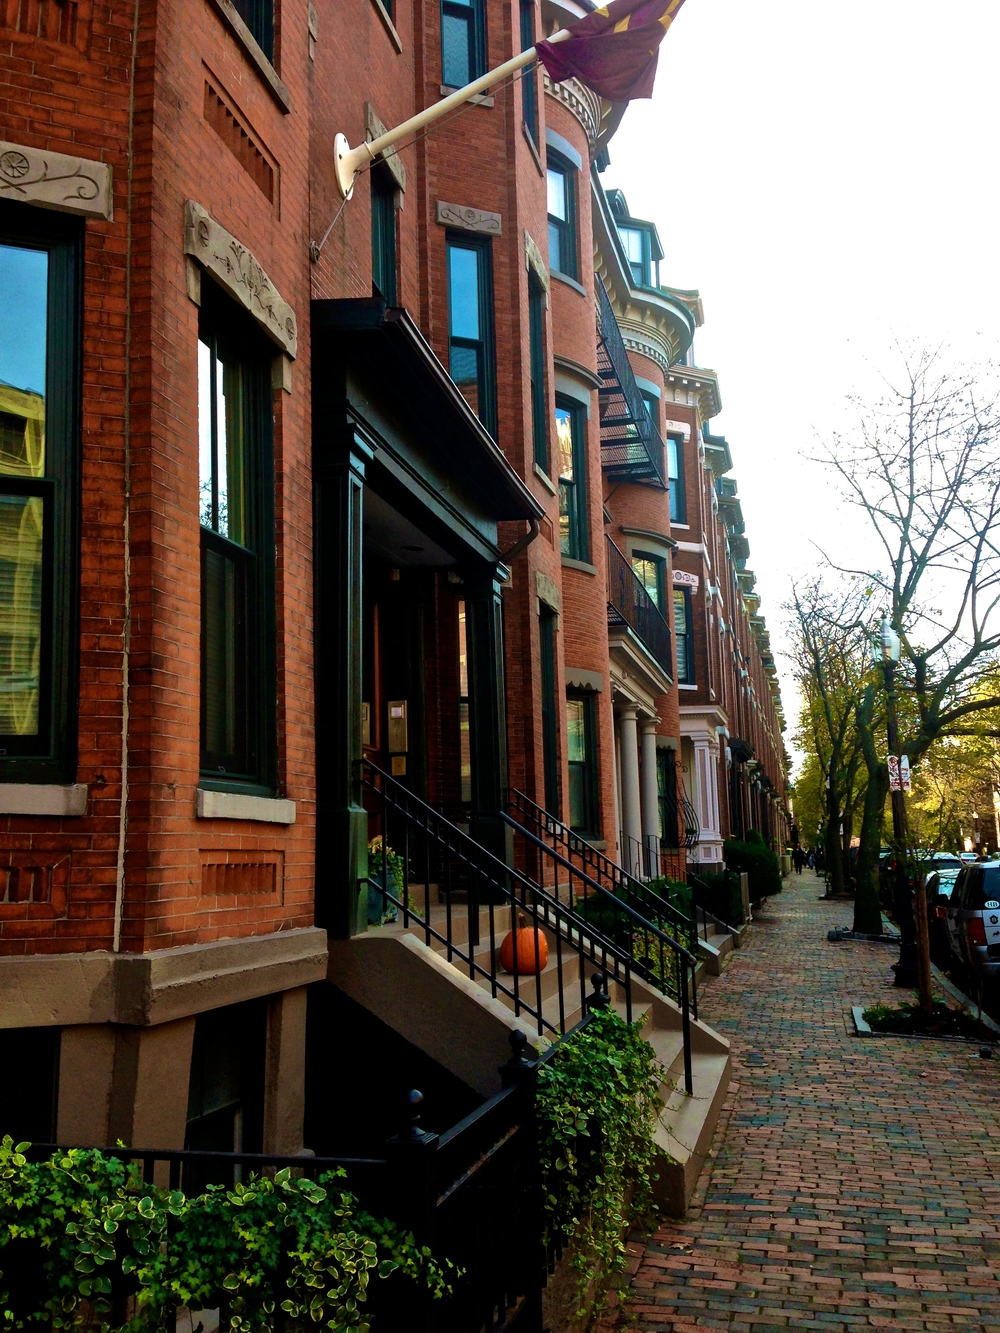 {Morning stroll through the South End on the way to brunch}